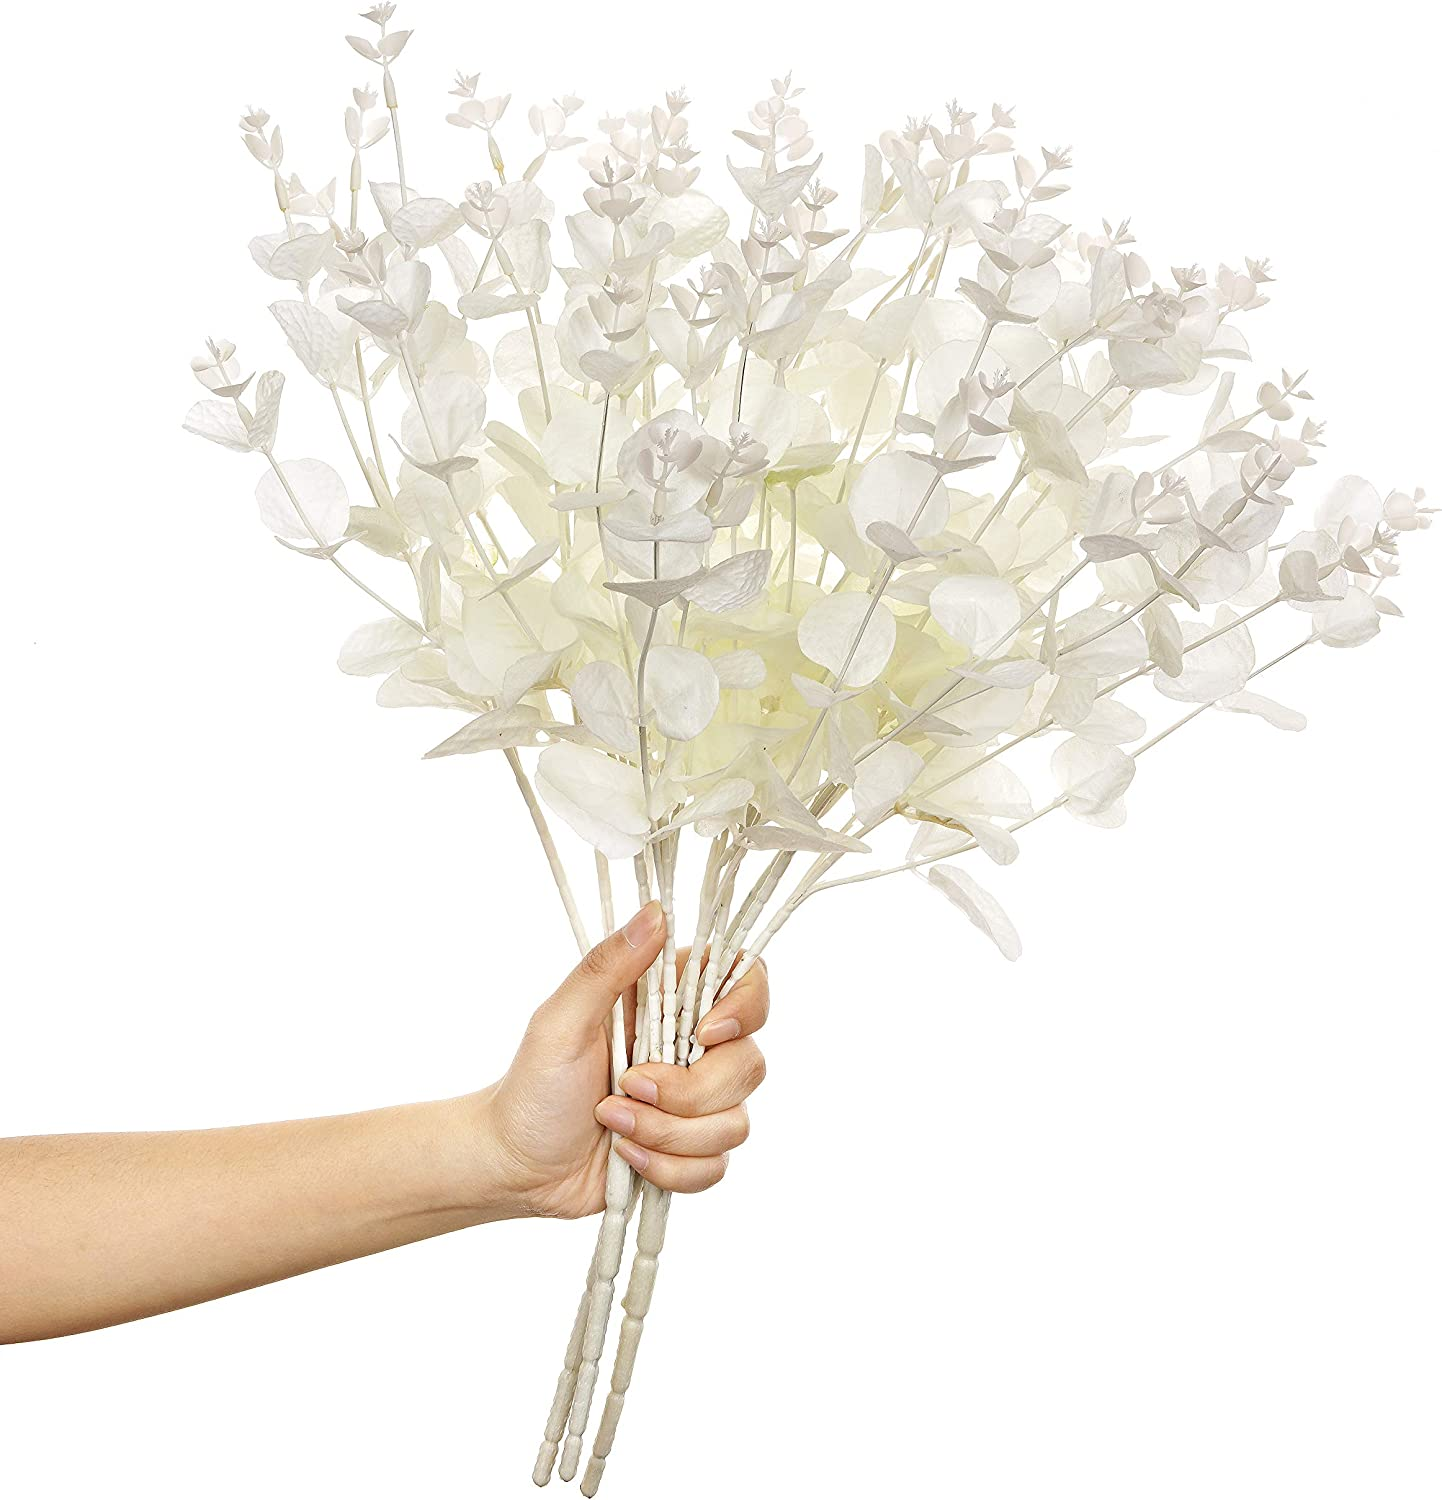 Paras 3pcs Artificial Eucalyptus Leaves, Faux Silk Eucalyptus Stems Bouquet Fake Greenery Plants with Total 16 Stems Arrangement for Home Party Wedding and Christmas(White)